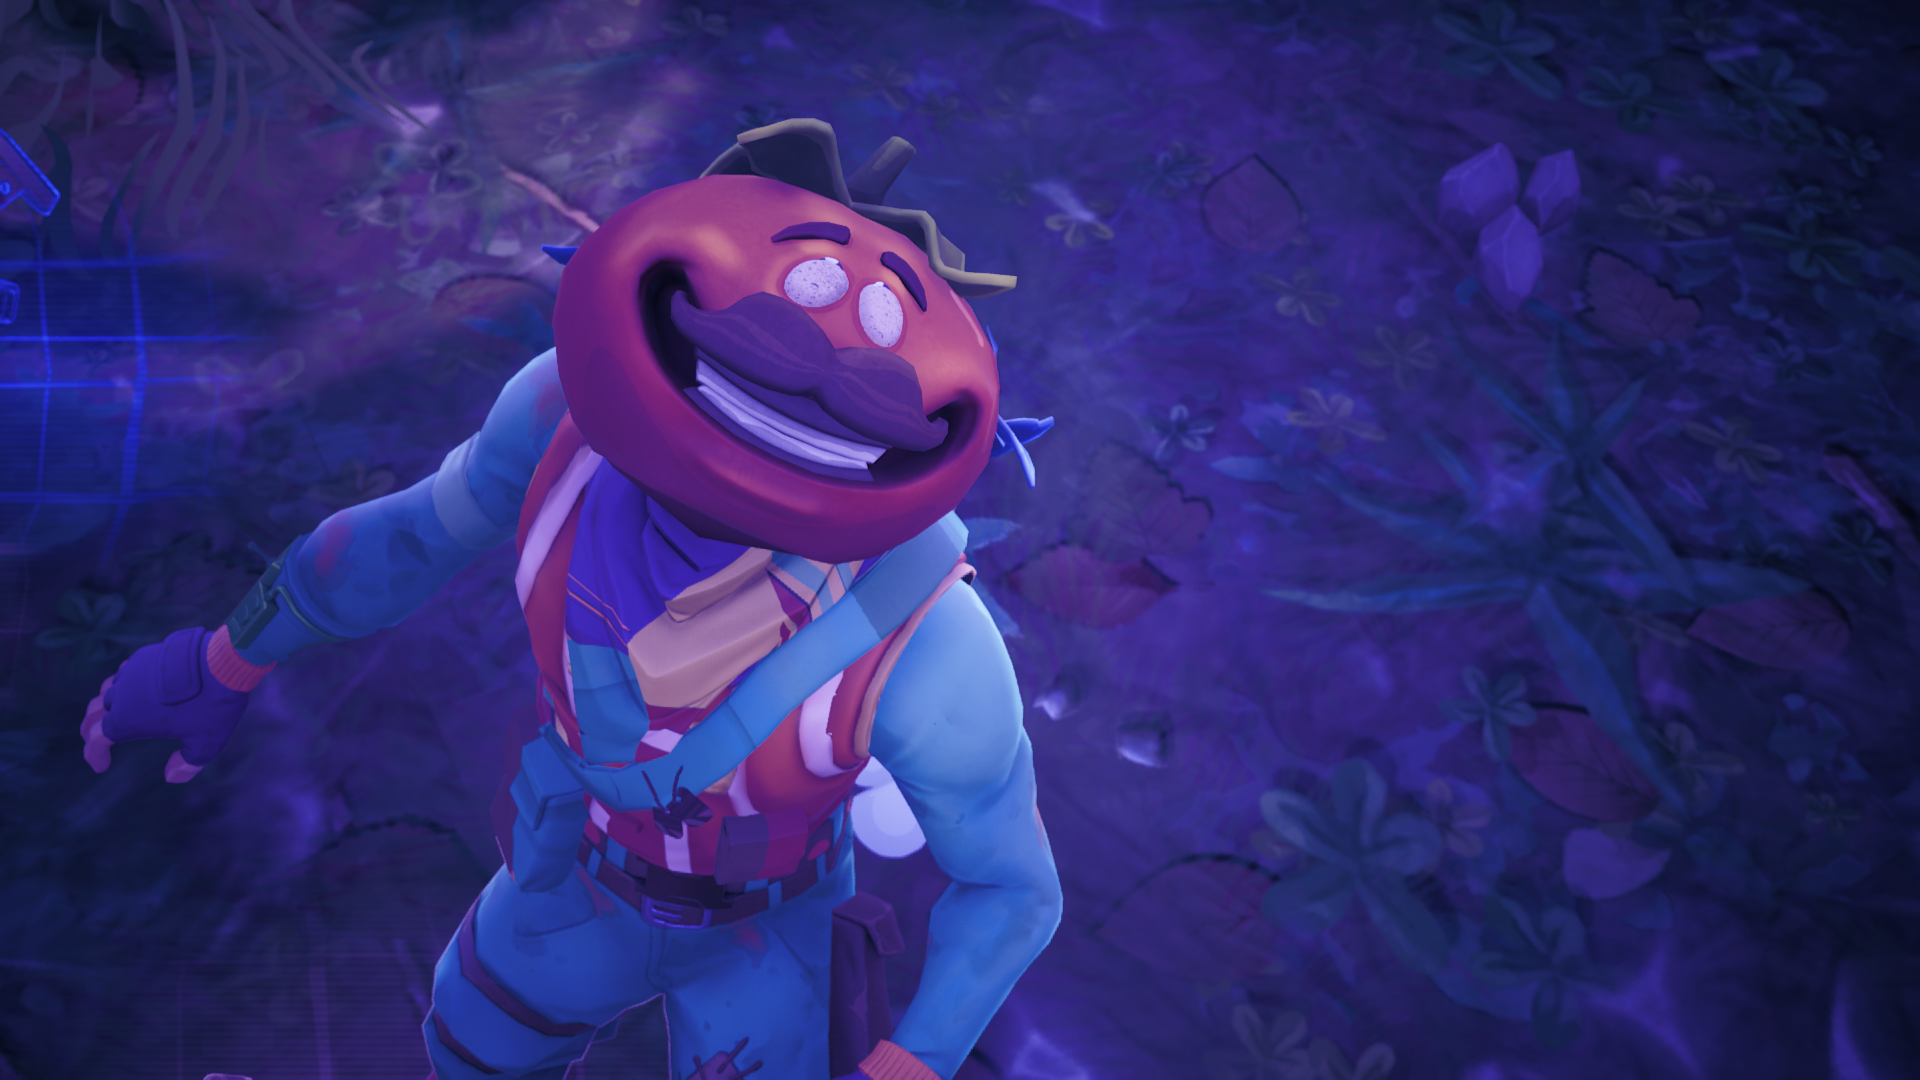 CREEPY] If you go into the replay mode the time tomato head dies his